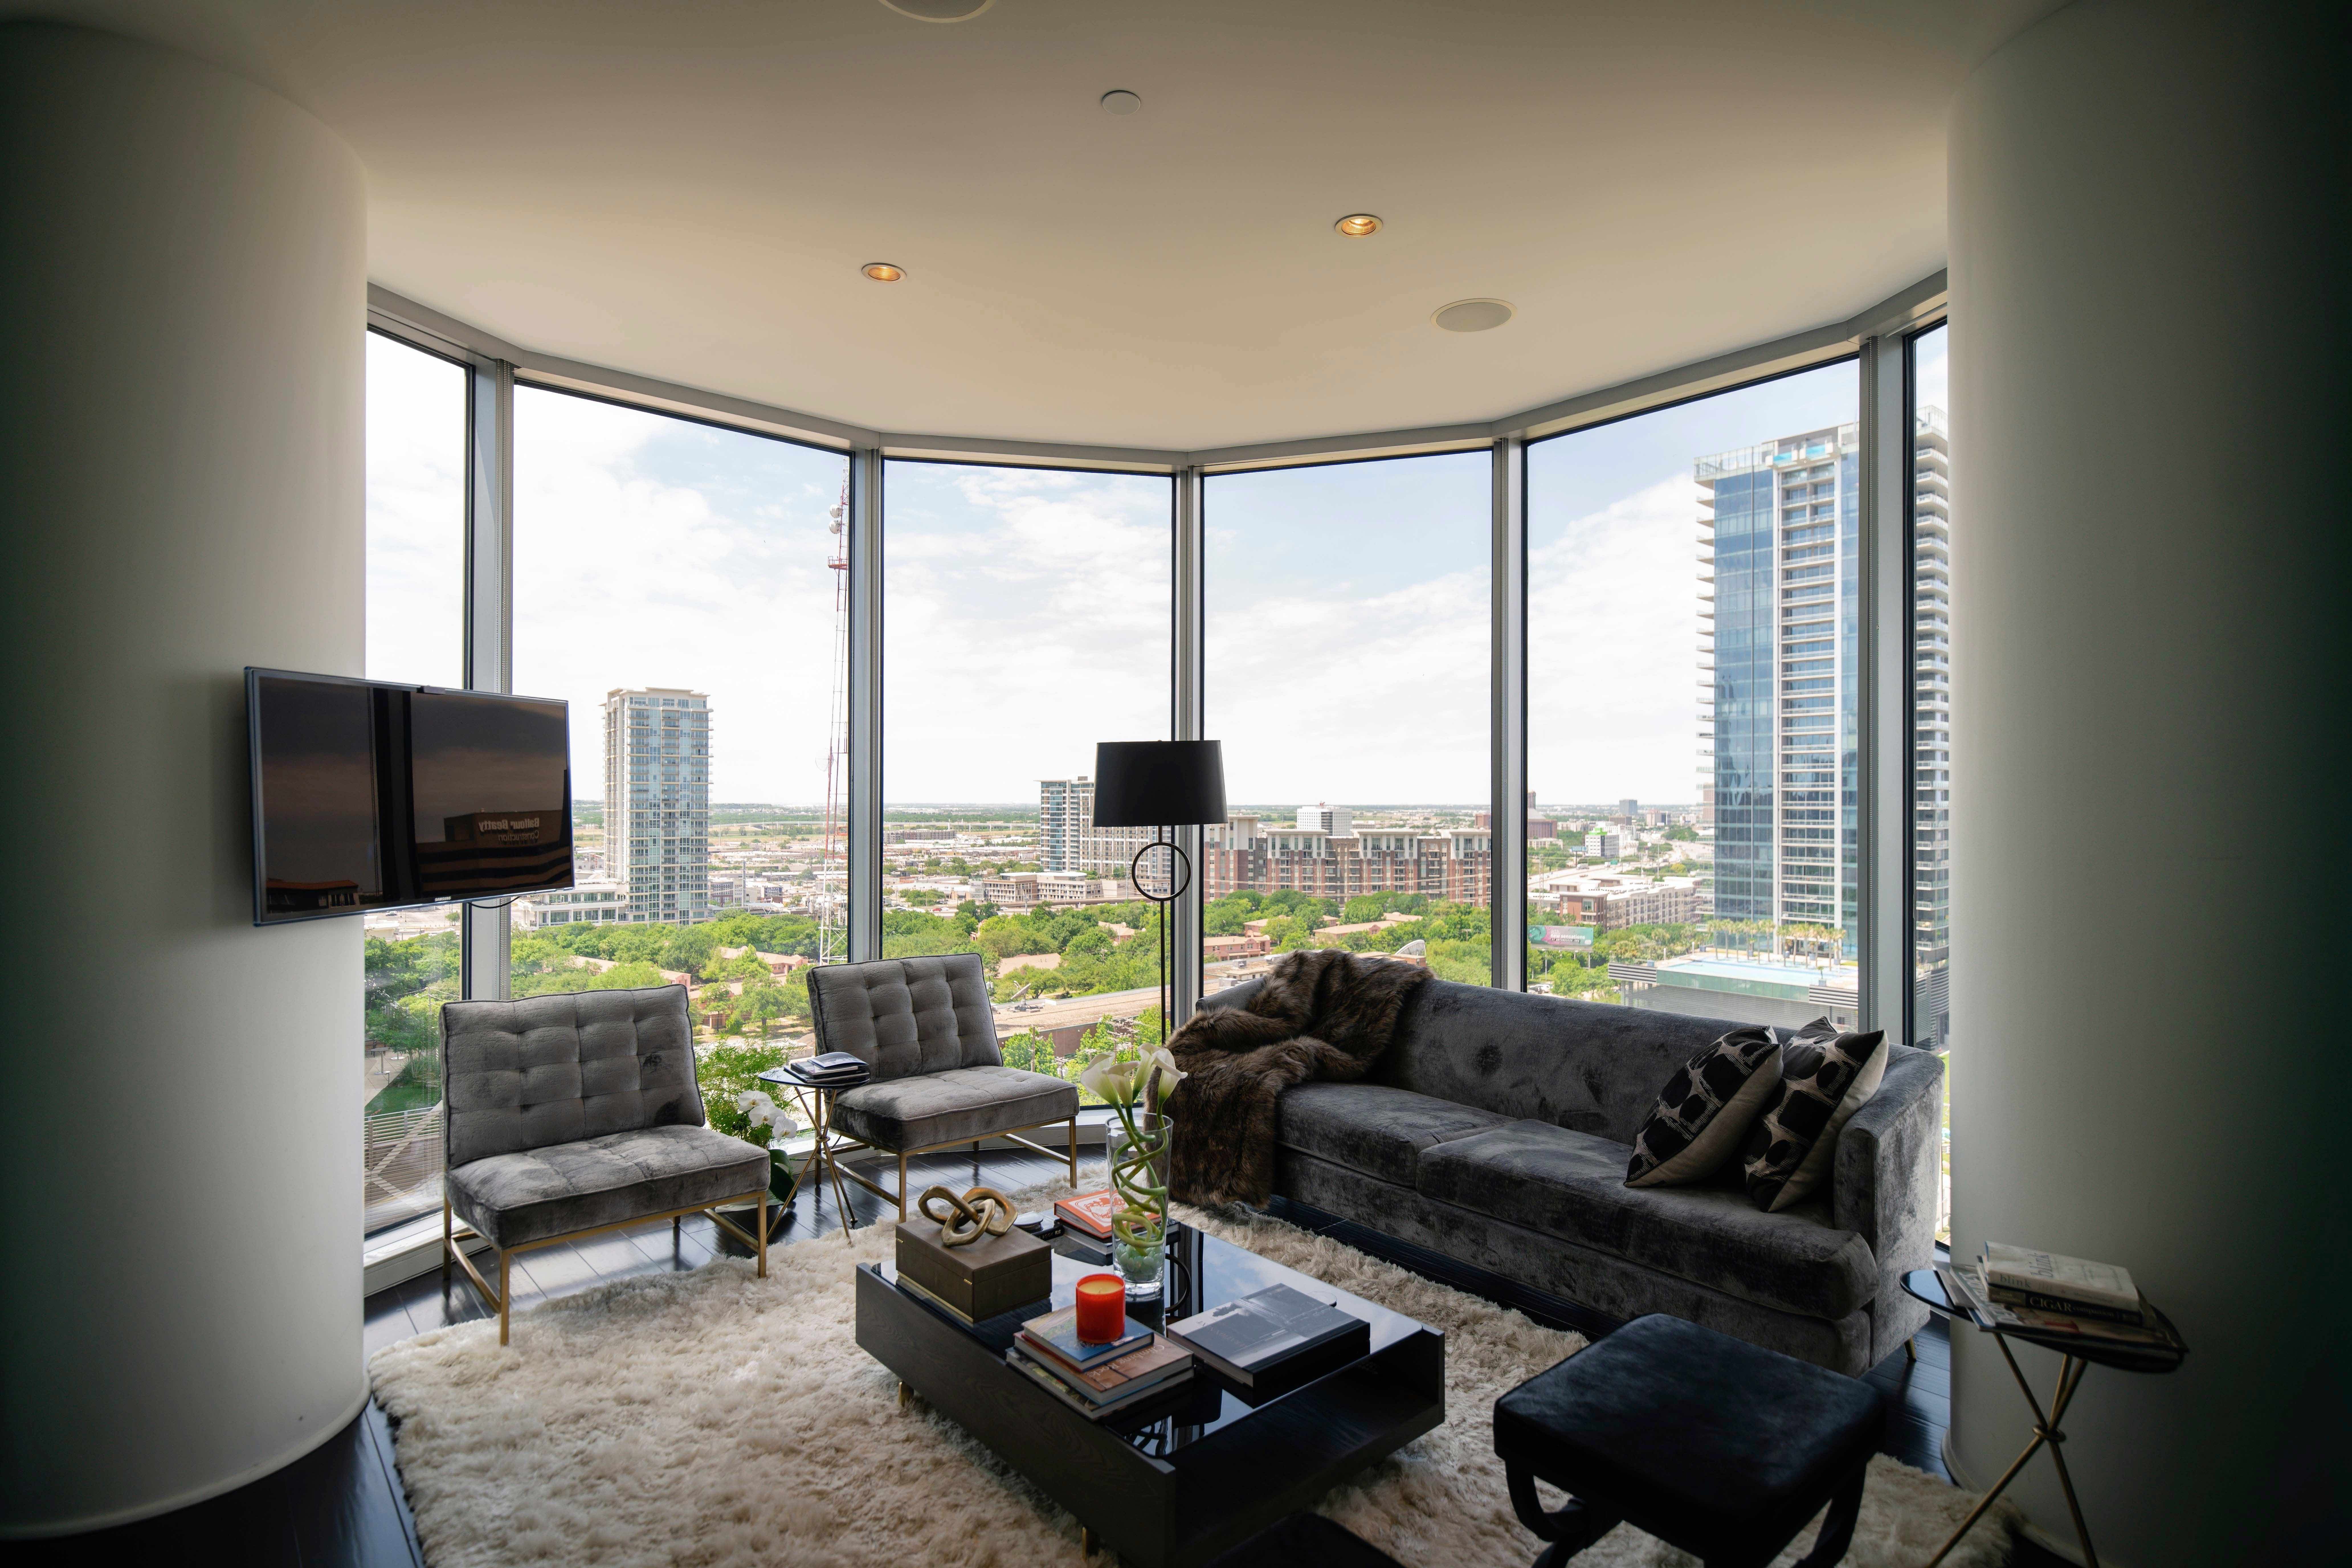 Top 6 Benefits of Living in a Condo